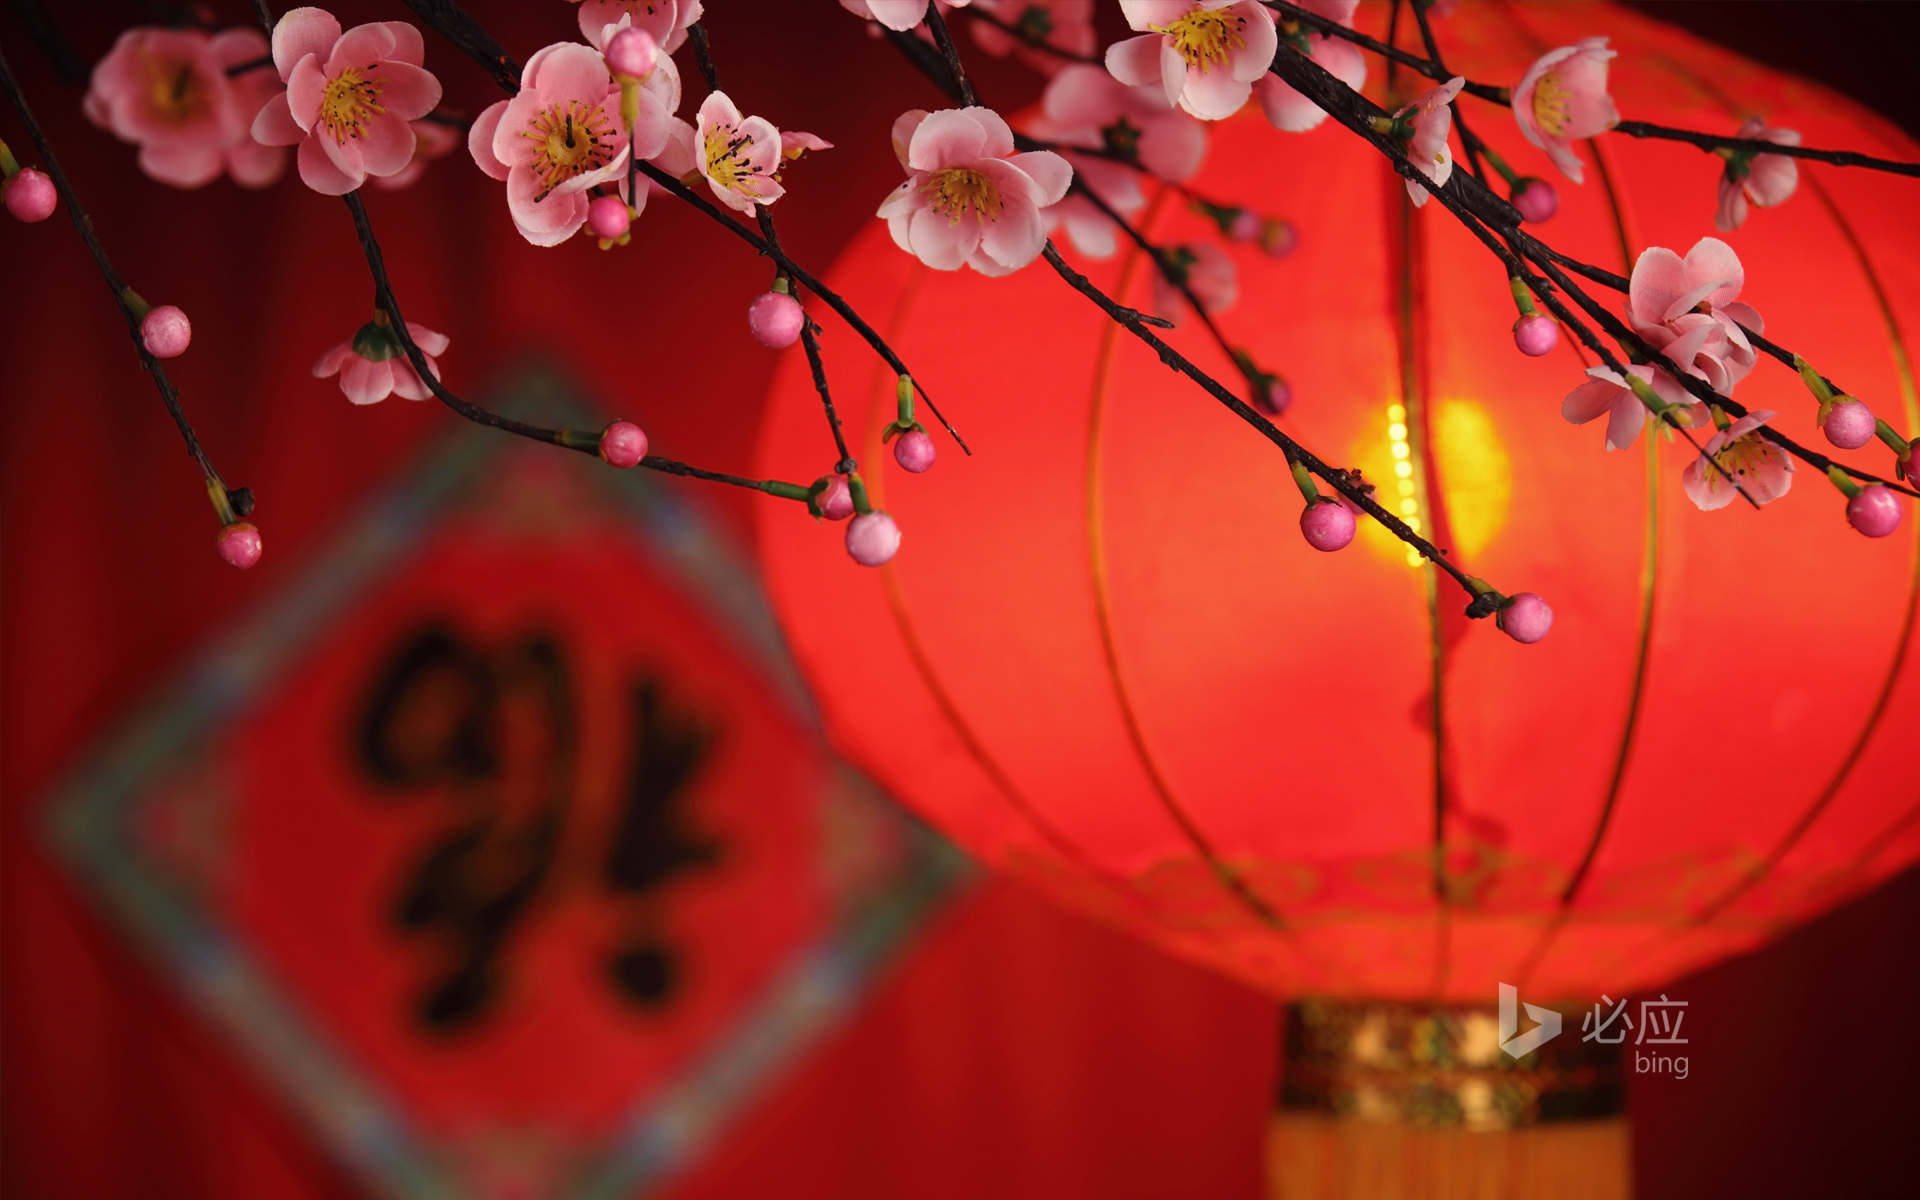 Chinese new year decoration, lanterns and blessings